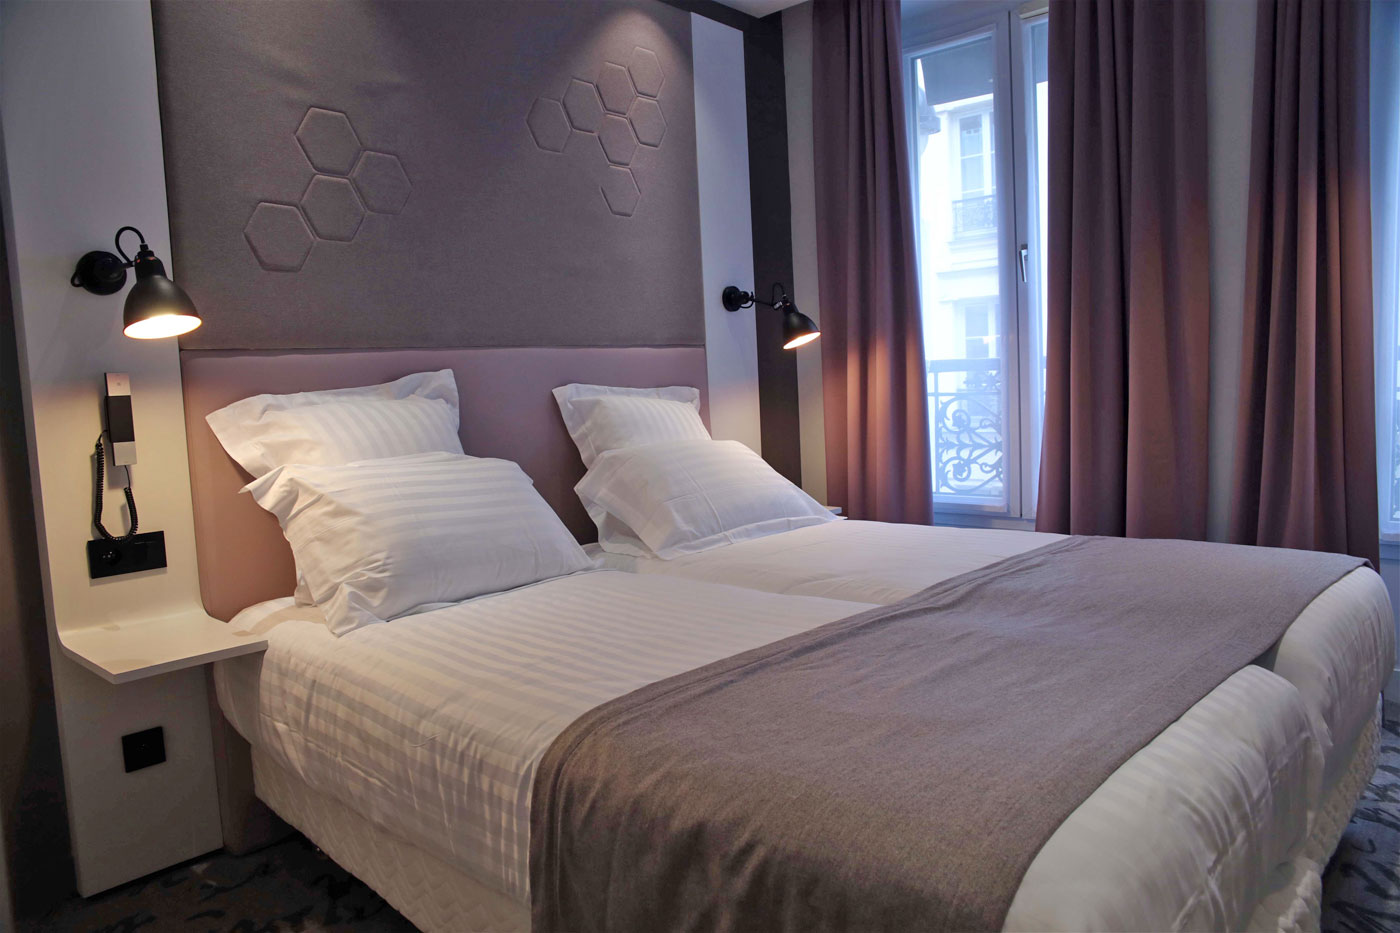 Hotel Vendome Saint Germain - Rooms